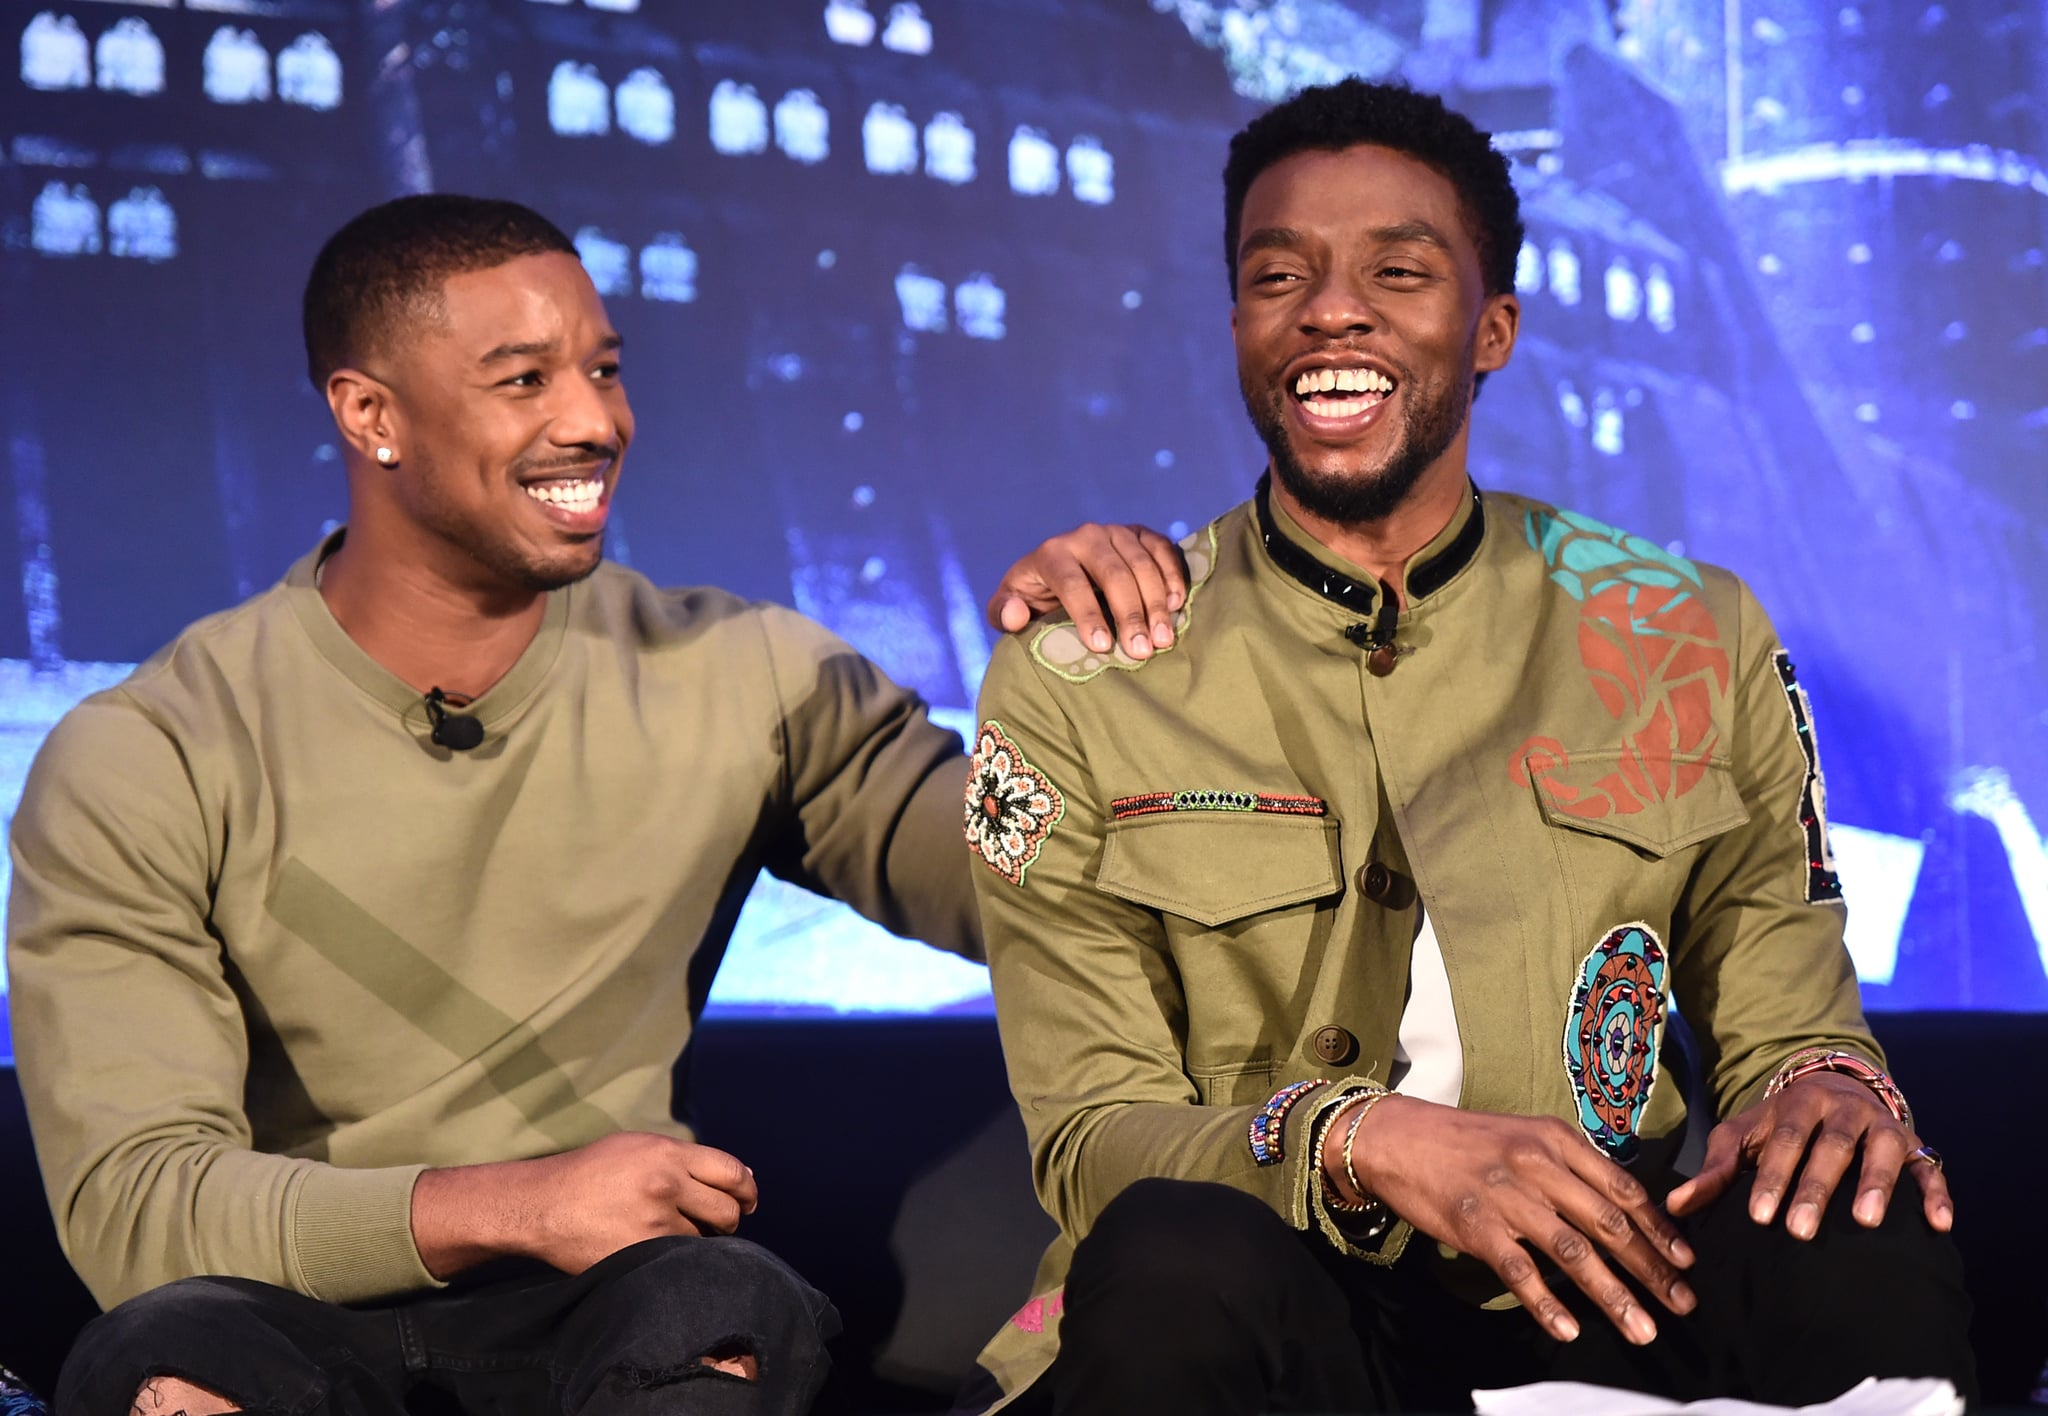 BEVERLY HILLS, CA - JANUARY 30: Actors Michael B. Jordan (L) and Chadwick Boseman attend the Marvel Studios' BLACK PANTHER Global Junket Press Conference on January 30, 2018 at Montage Beverly Hills in Beverly Hills, California.  (Photo by Alberto E. Rodriguez/Getty Images for Disney)